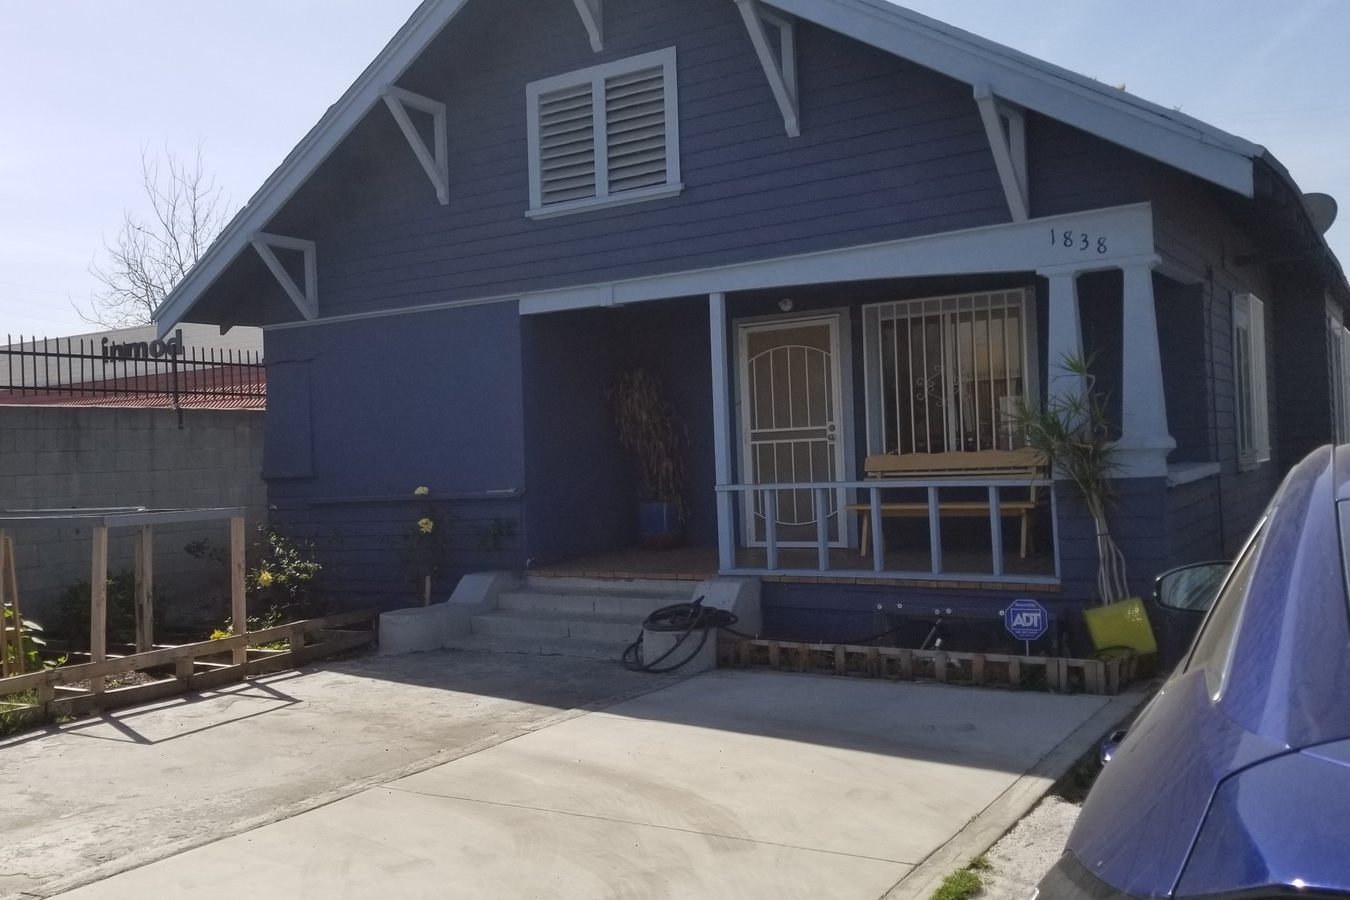 1838 East 42nd Street,Los Angeles, CA 90058 - LEASE RATE: $ 21.60/ SF/ YRRBA: +/- 2,500- Renovated Live/Work Space near Downtown Los Angeles.- Ground floor loft with kitchen, two bathroom and wood floors.- Natural light from large windows.